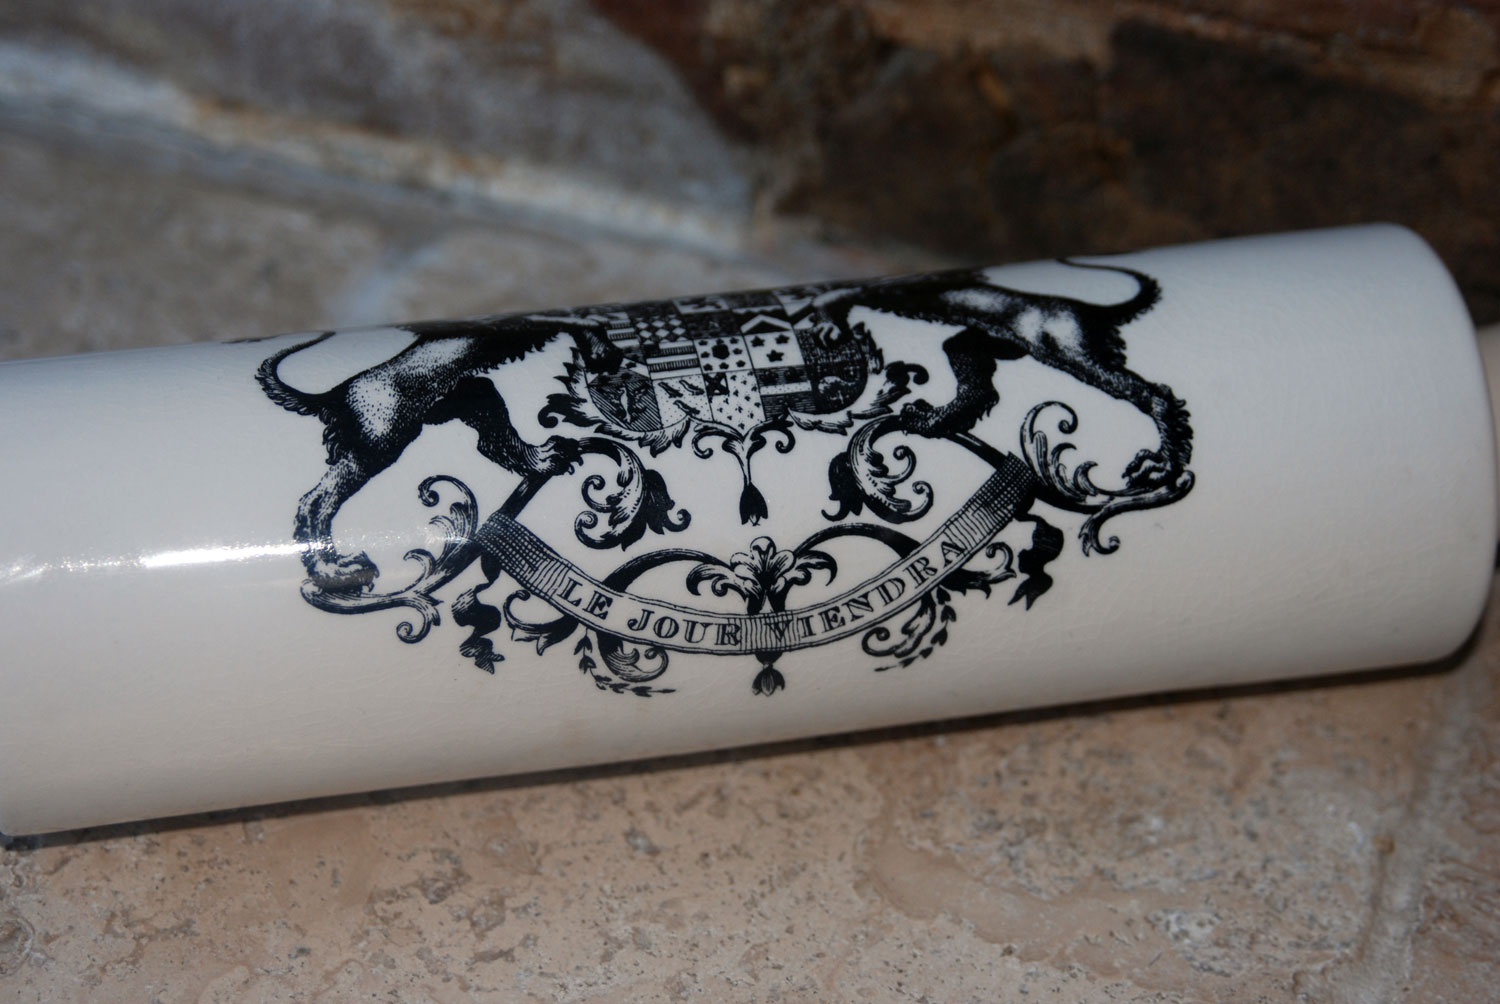 rare portmeirion vintage 1960s mid century modern white ironstone ceramic rolling pin black transfer print english earl of durham le jour viendra